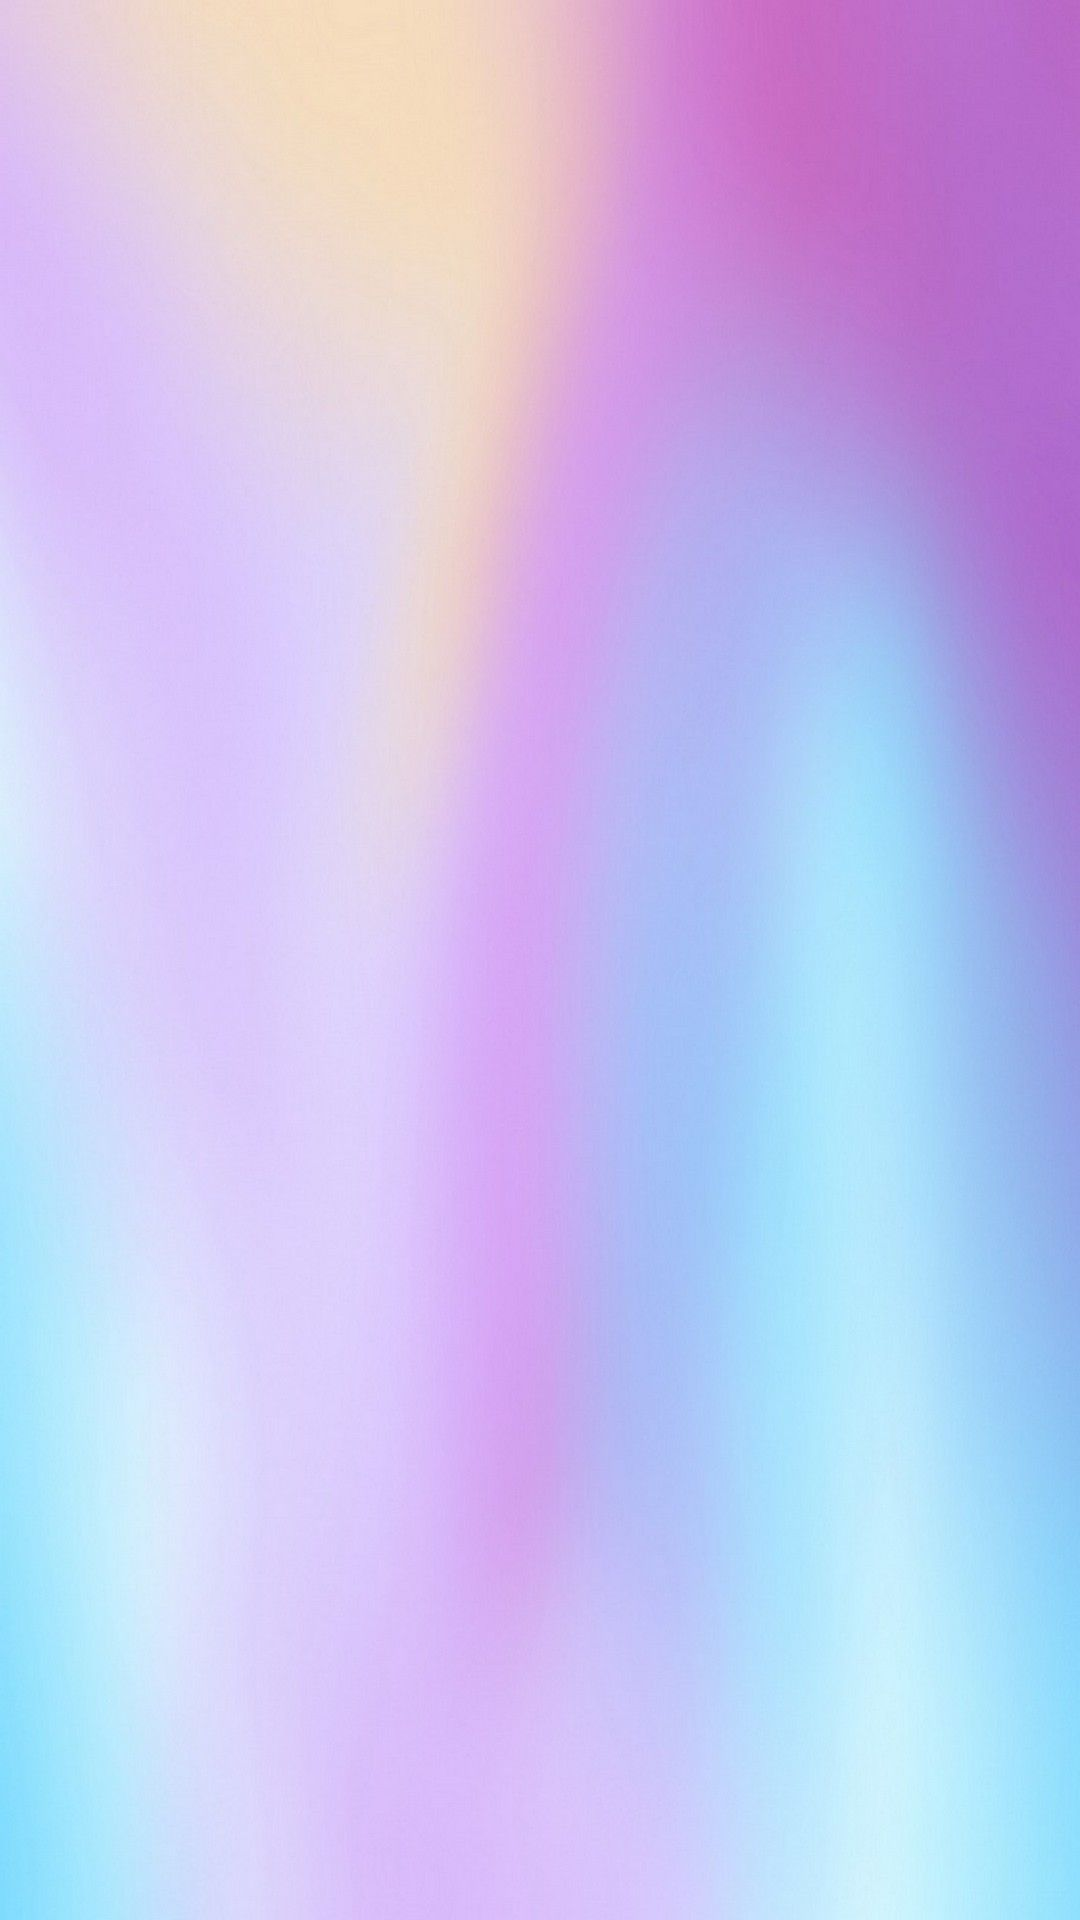 Gradient Iphone Wallpapers Top Free Gradient Iphone Backgrounds Wallpaperaccess